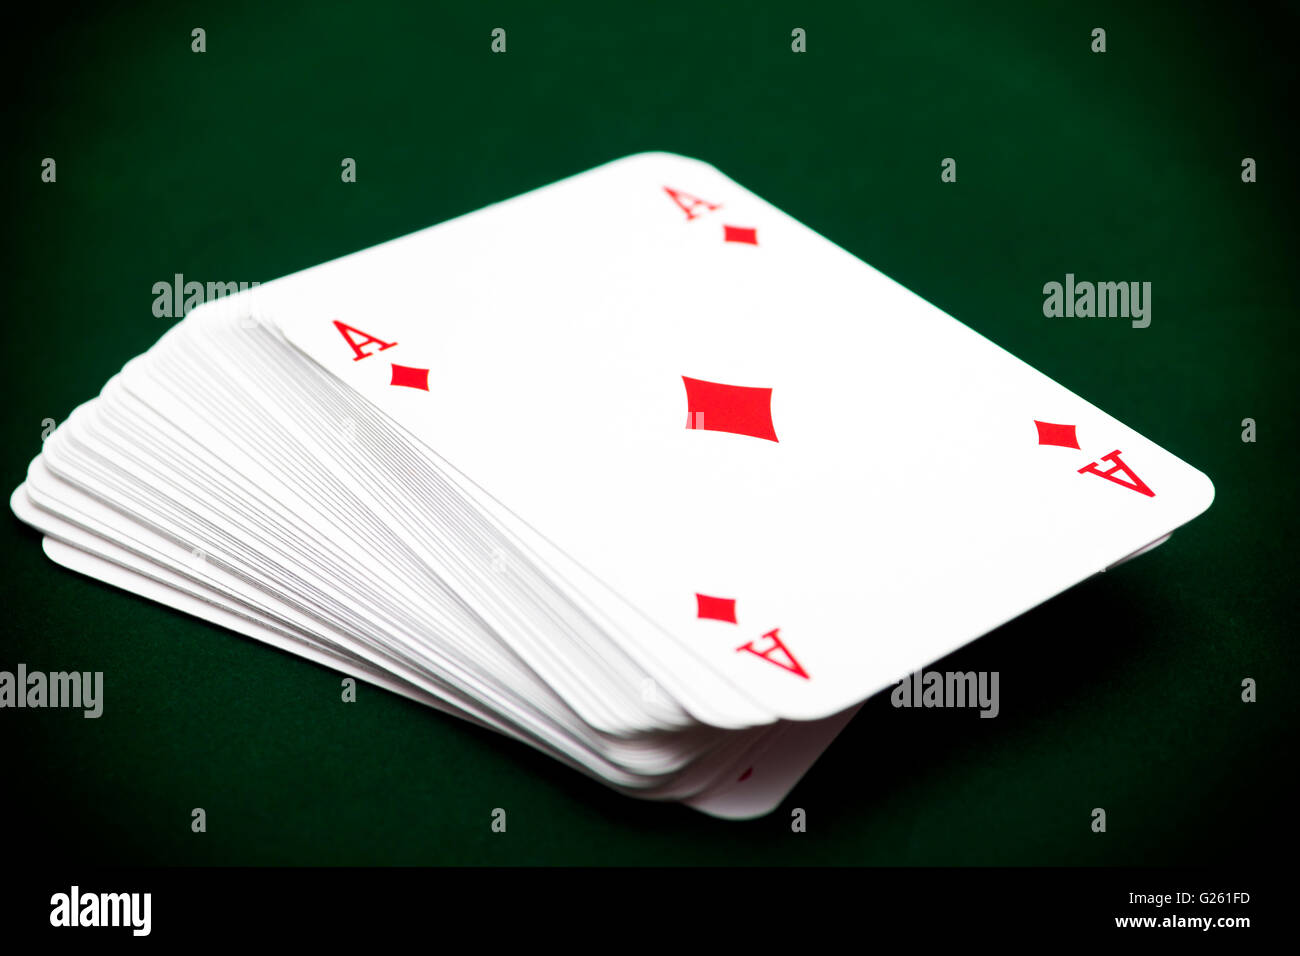 Deck of cards with ace of diamond on top. Green background - Stock Image